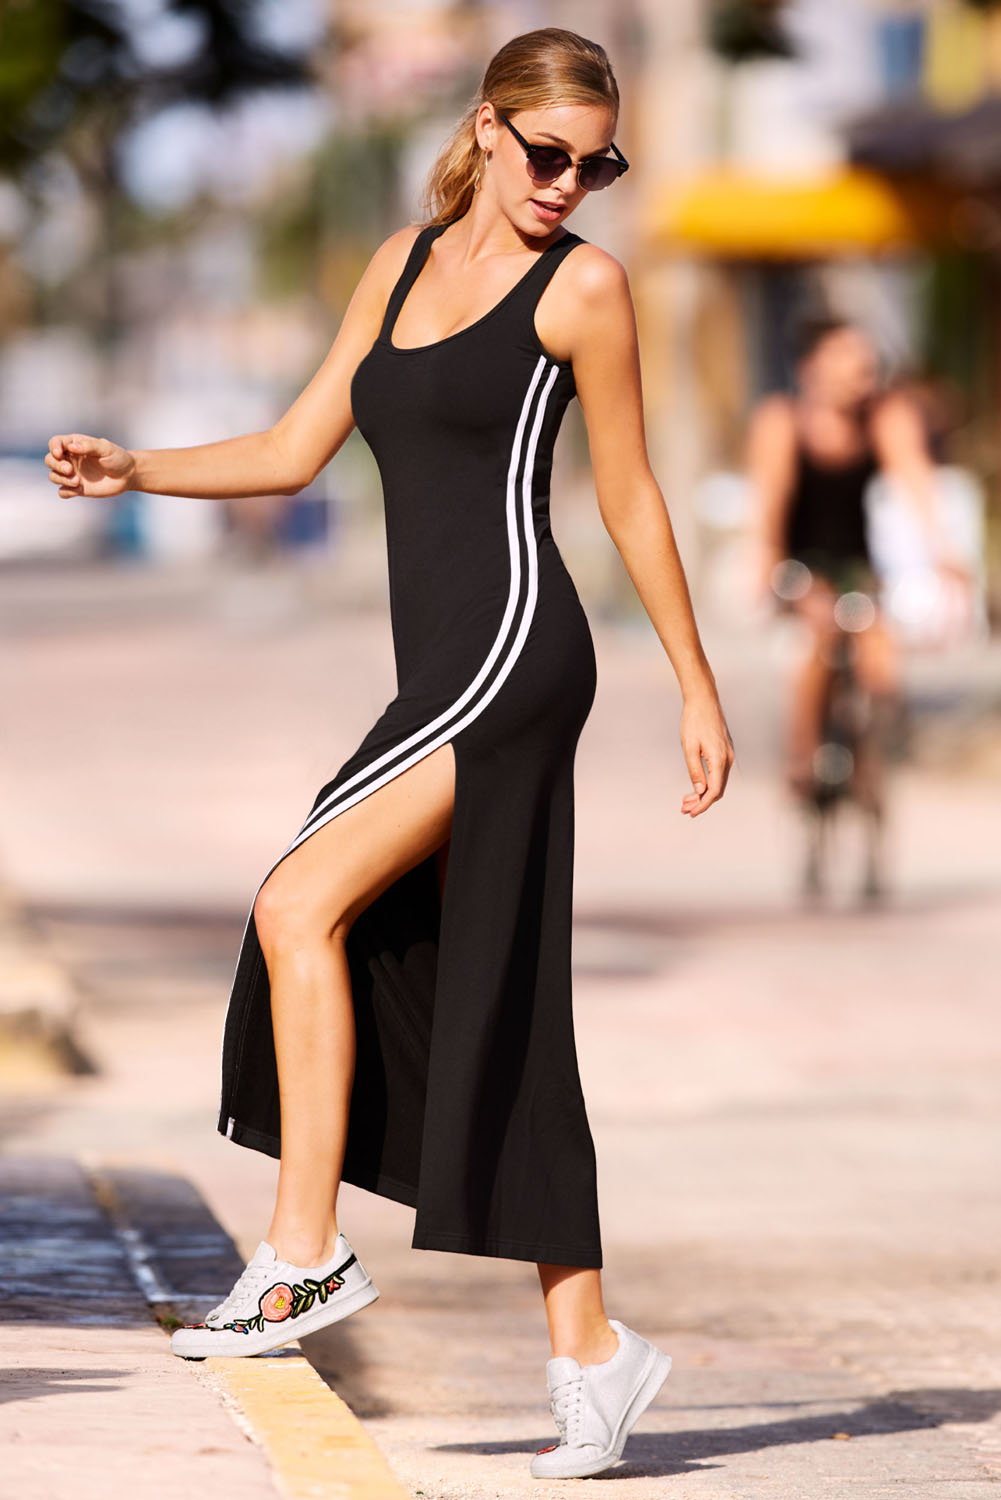 Racer Stripe Detail Black Sleeveless Maxi Dress